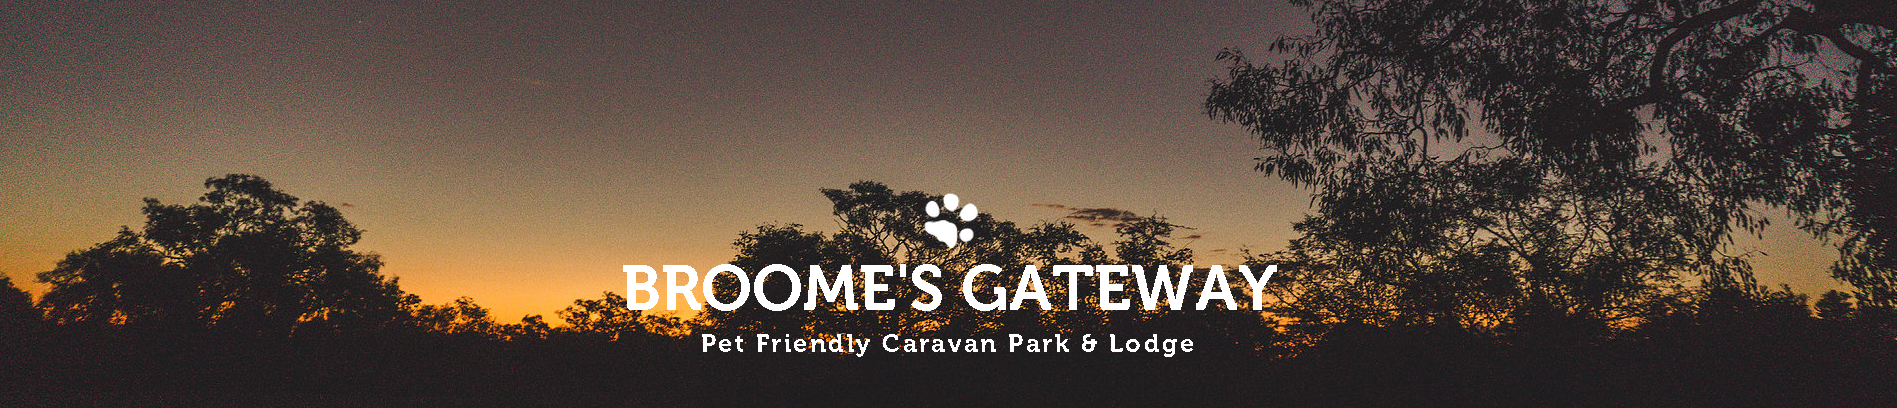 Broome's Gateway | Pet Friendly | Caravan Park & Lodge